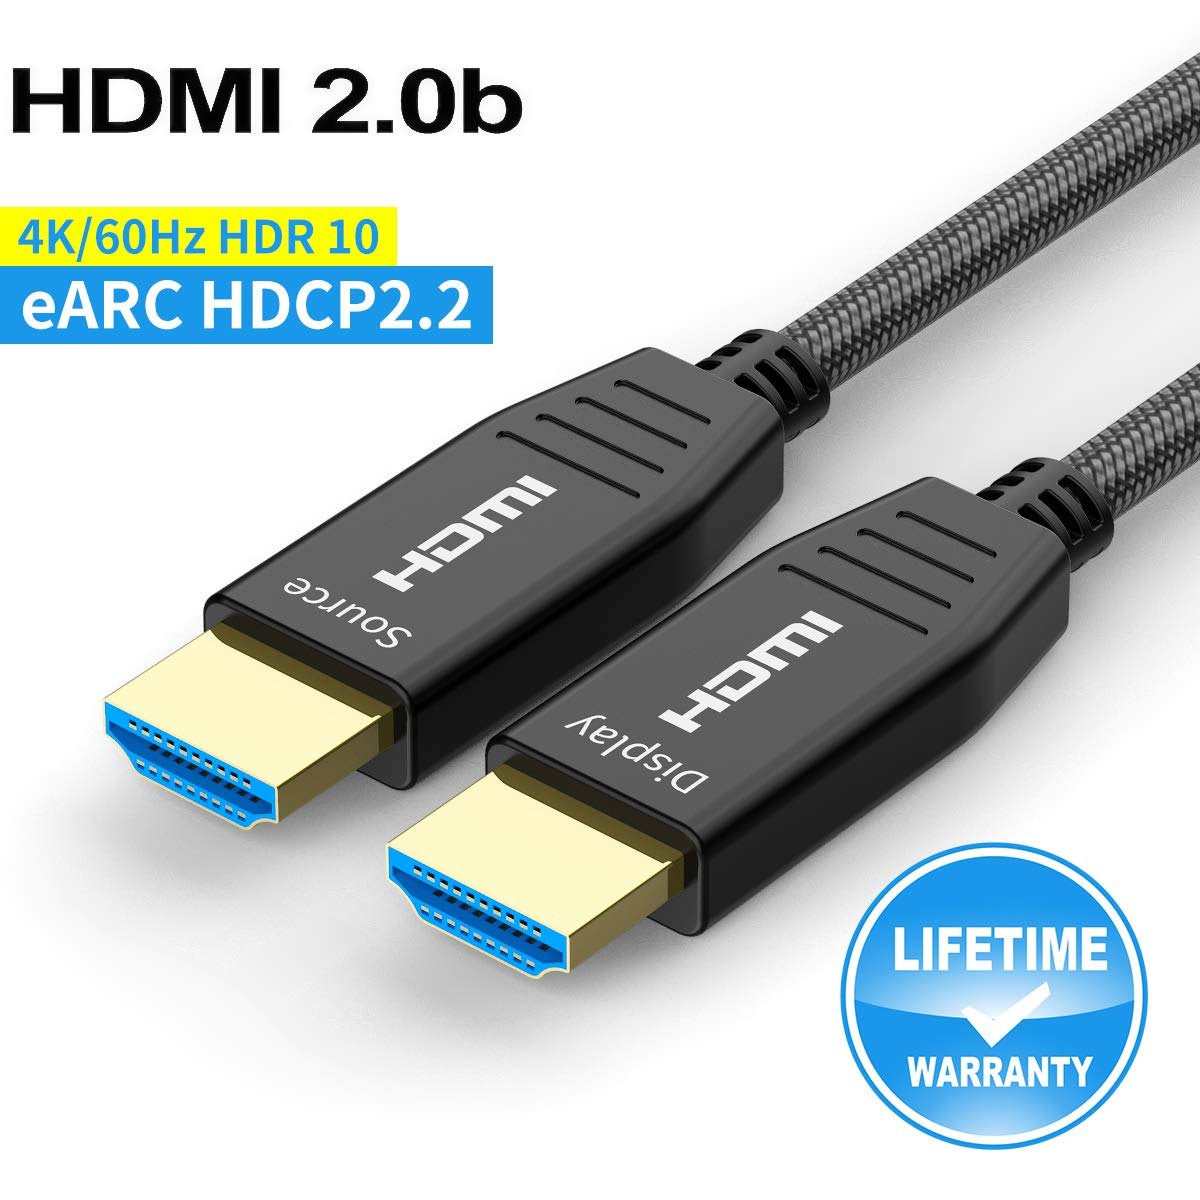 Fiber HDMI Cable 100ft 4K 60Hz, FURUI HDMI 2.0b Fiber Optic Cable Nylon Braided HDR10, ARC, HDCP2.2, 3D, Dolby Vision, 18Gbps Fiber Optic HDMI Cable Subsampling 4:4:4/4:2:2/4:2:0 Slim and Flexible